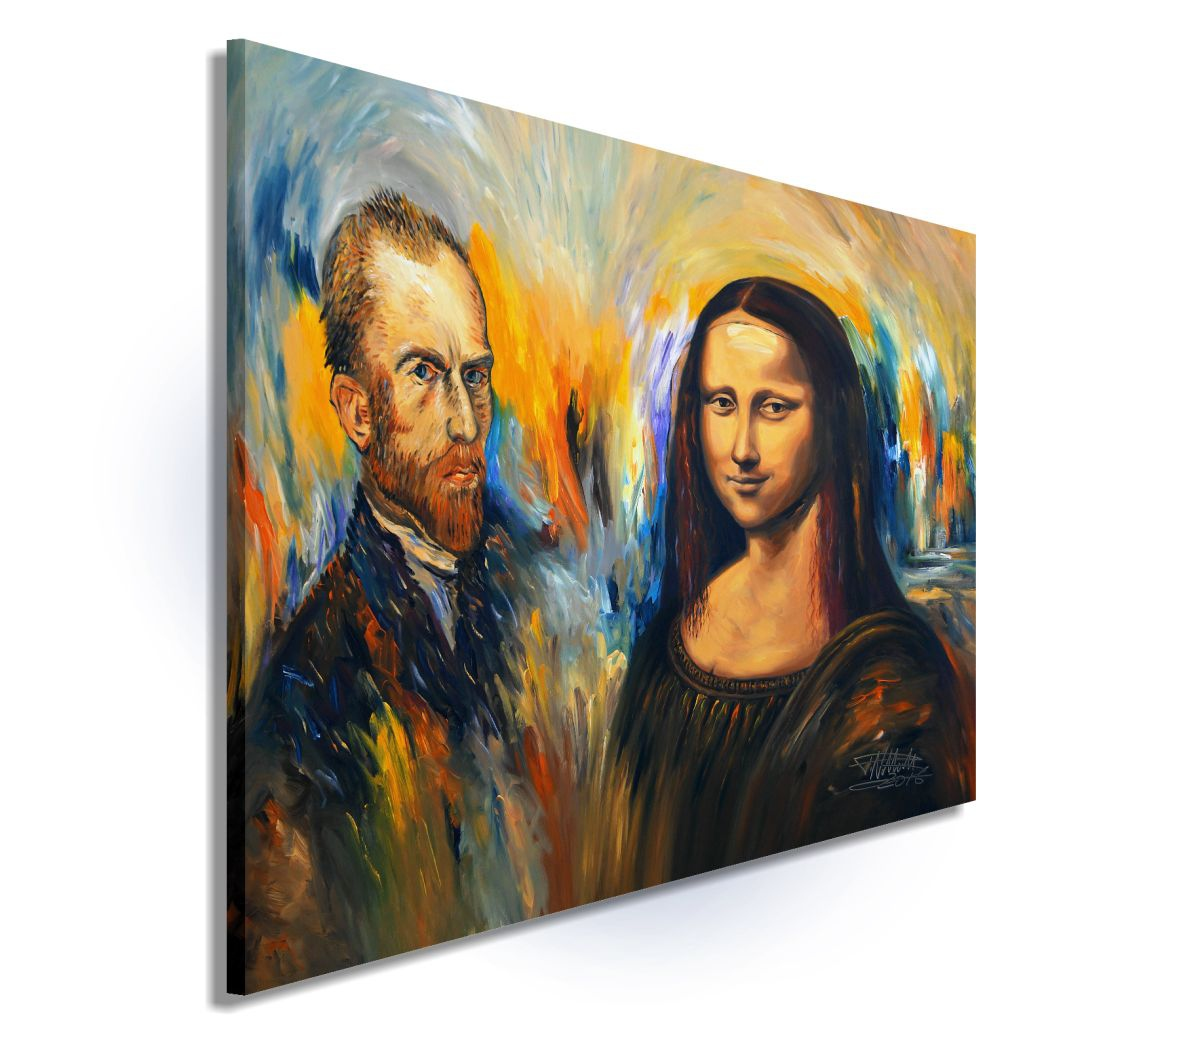 Vincent Meets Mona Lisa Xl 1 2016 Acrylic Painting By